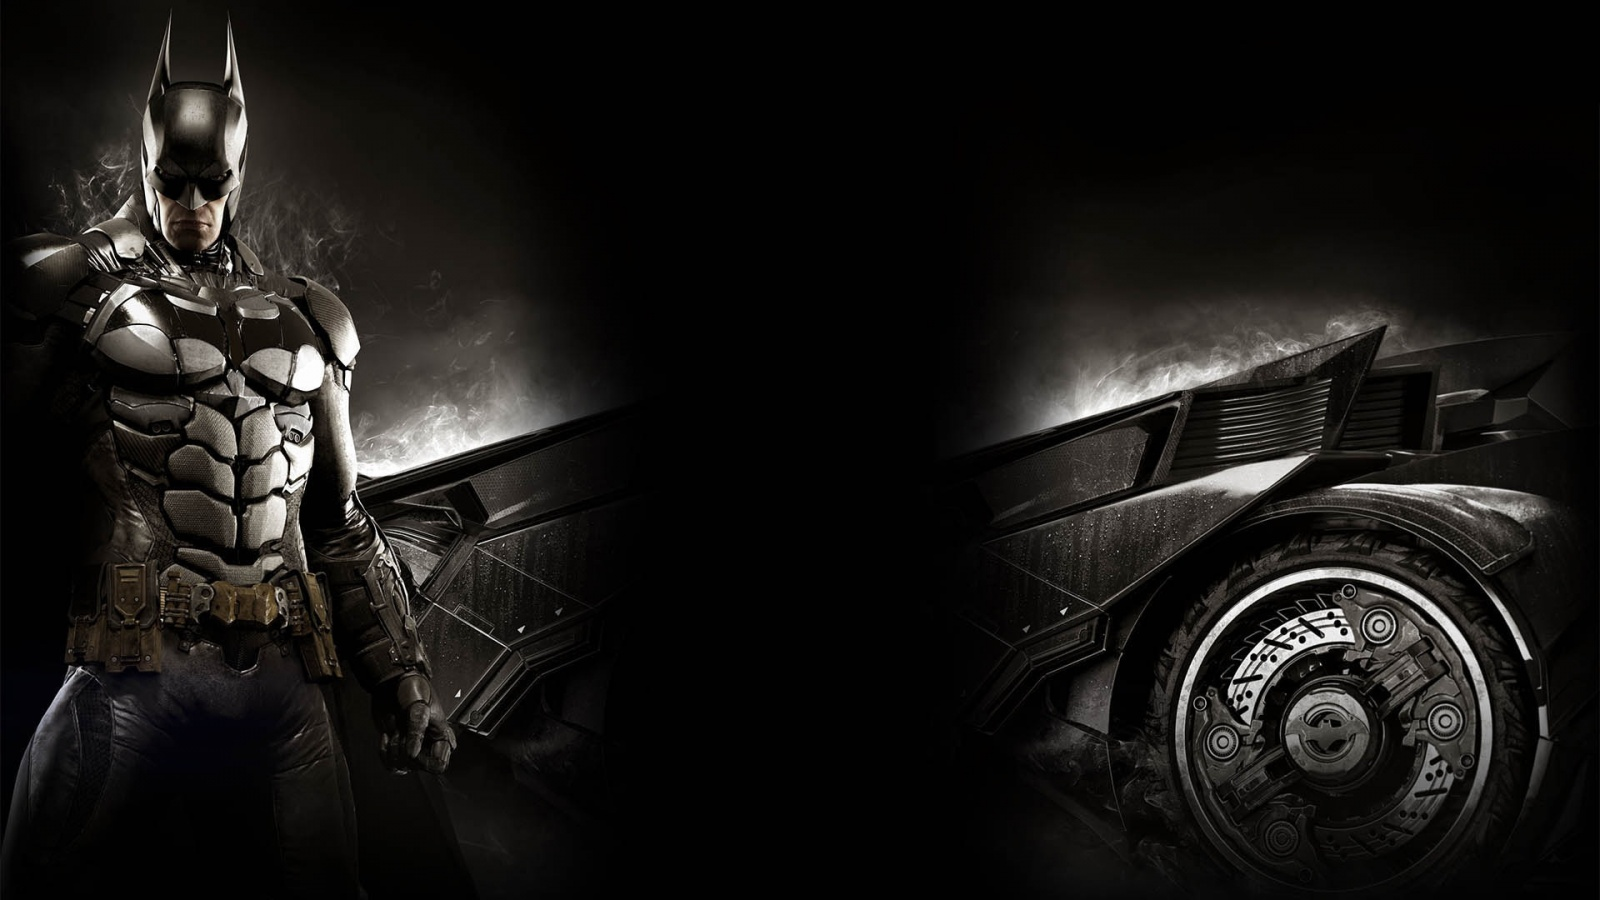 limited edition batman arkham knight wallpapers in jpg format for